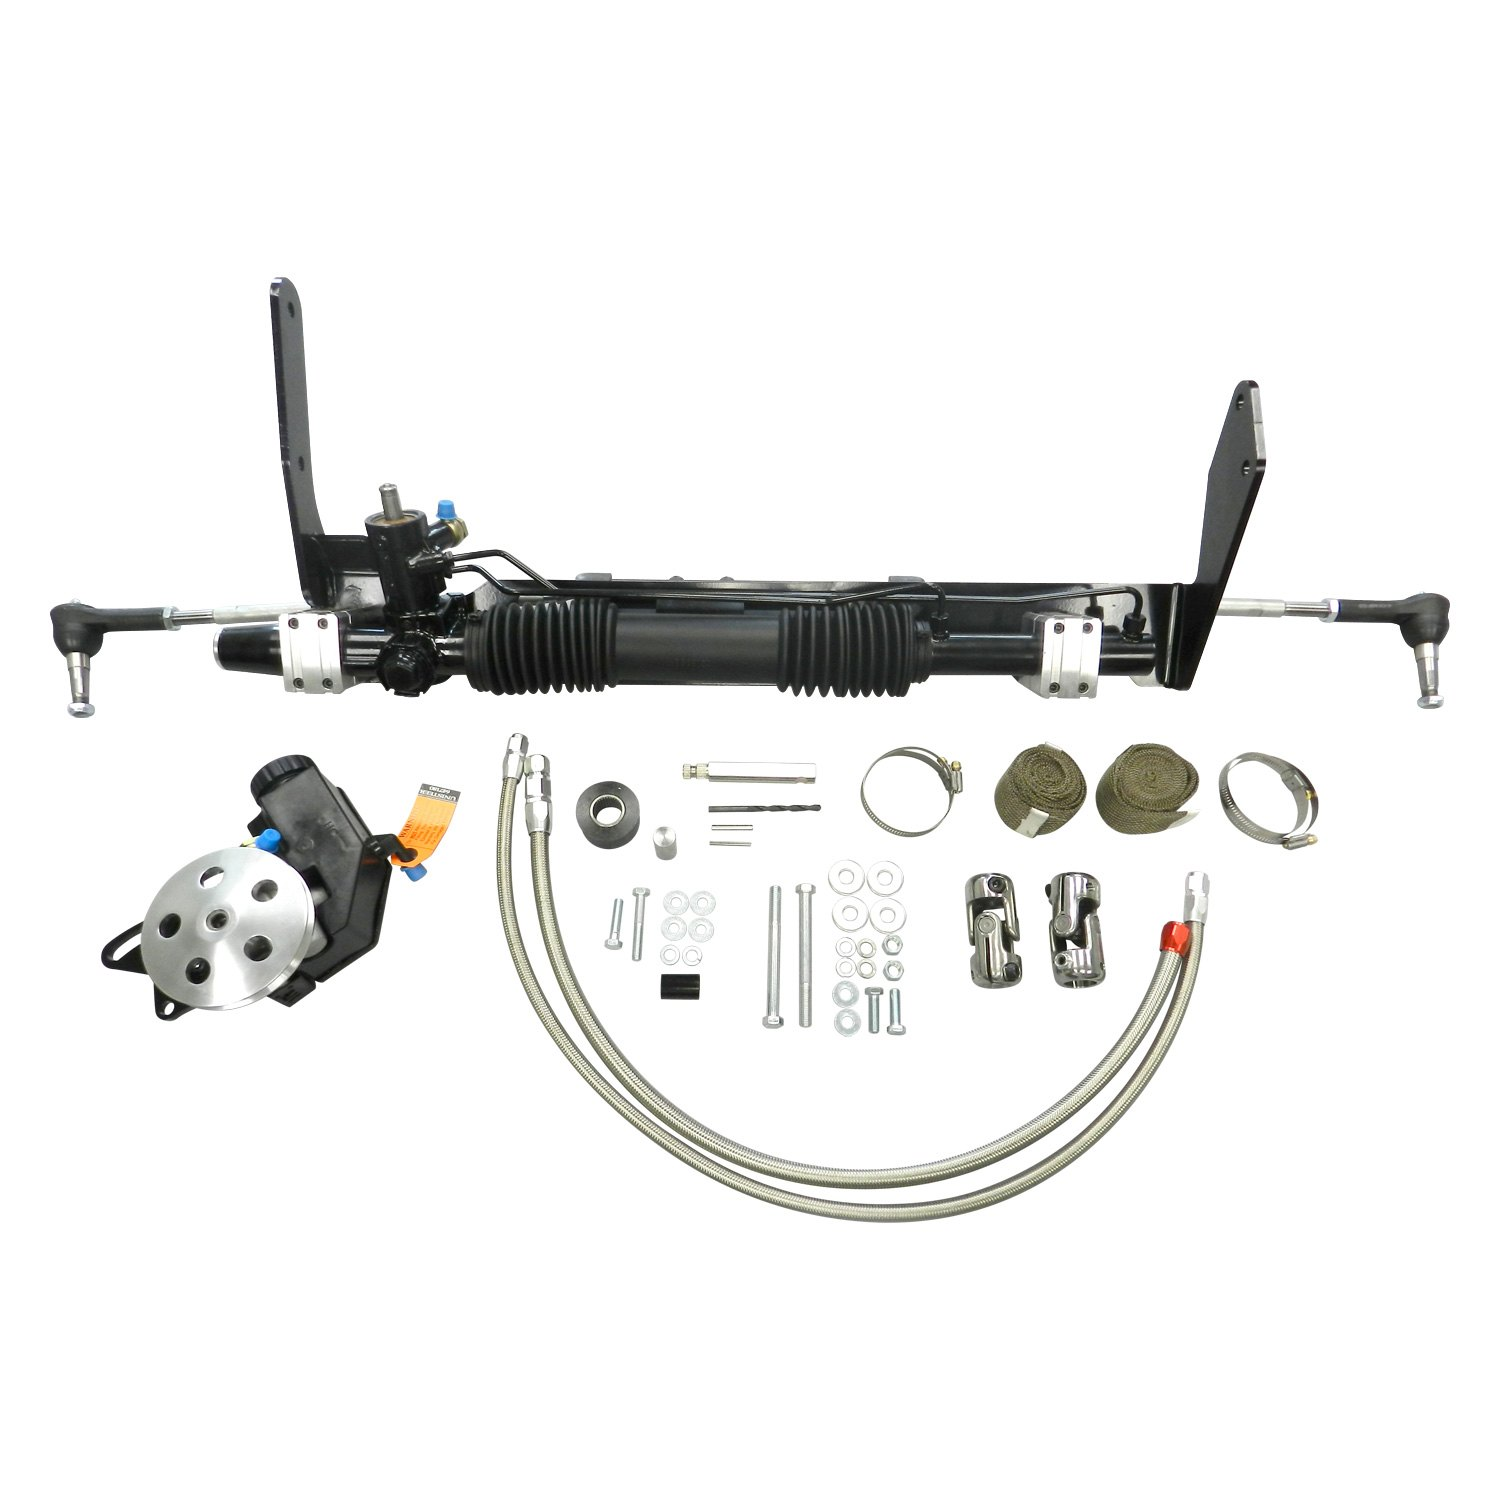 kb name superatv rackboss heavy size pinion ranger forum duty views thumbs up page rack discussions and